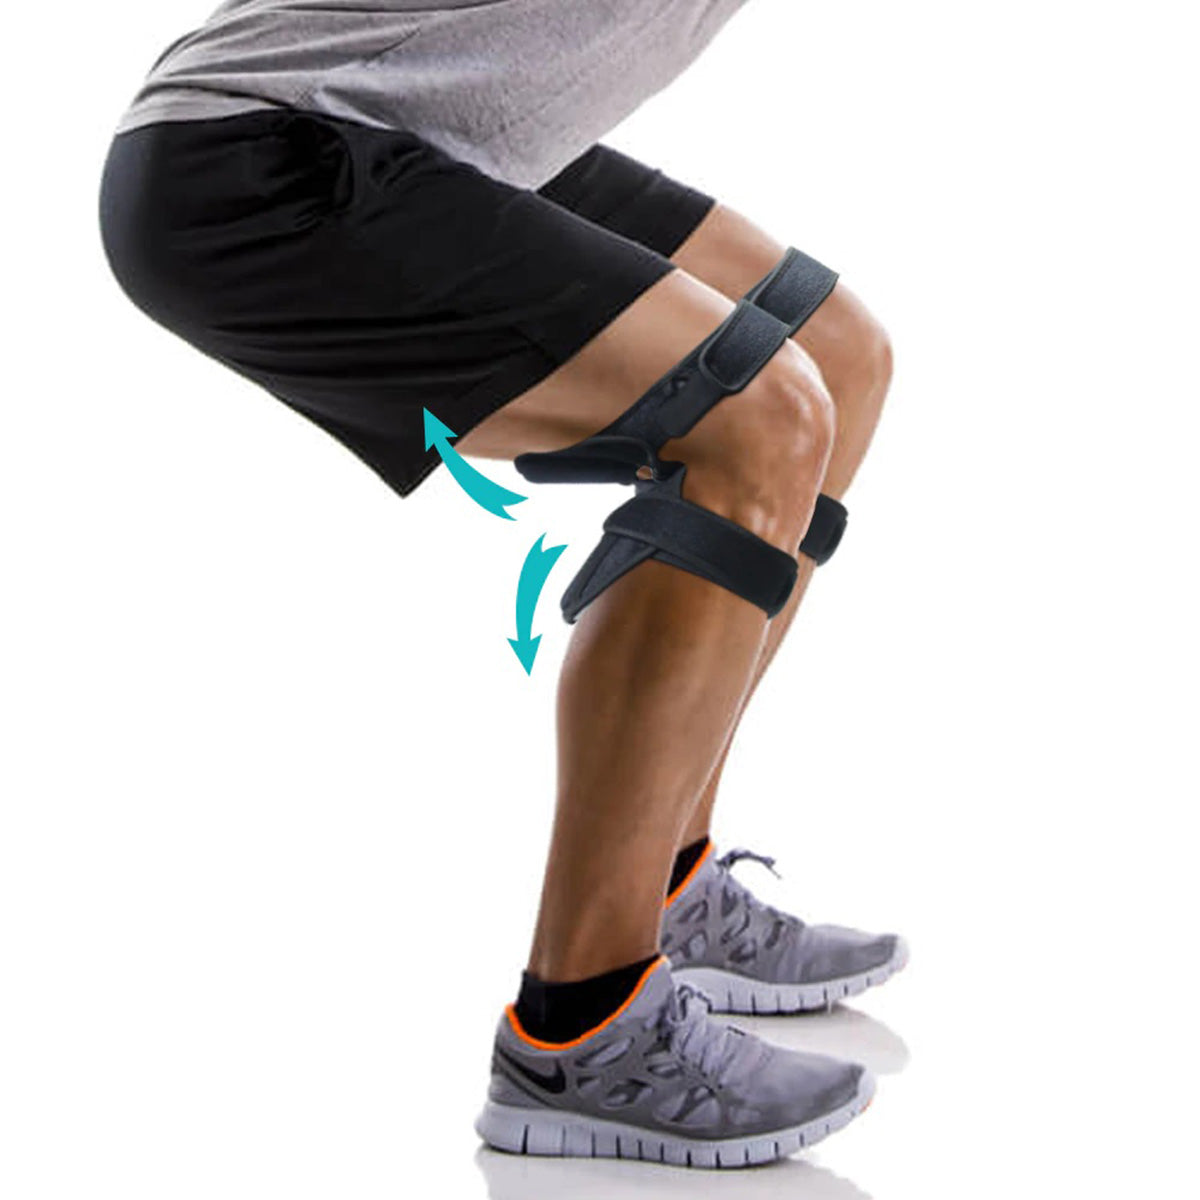 Joint Support Knee Stabilizer Spring Brace